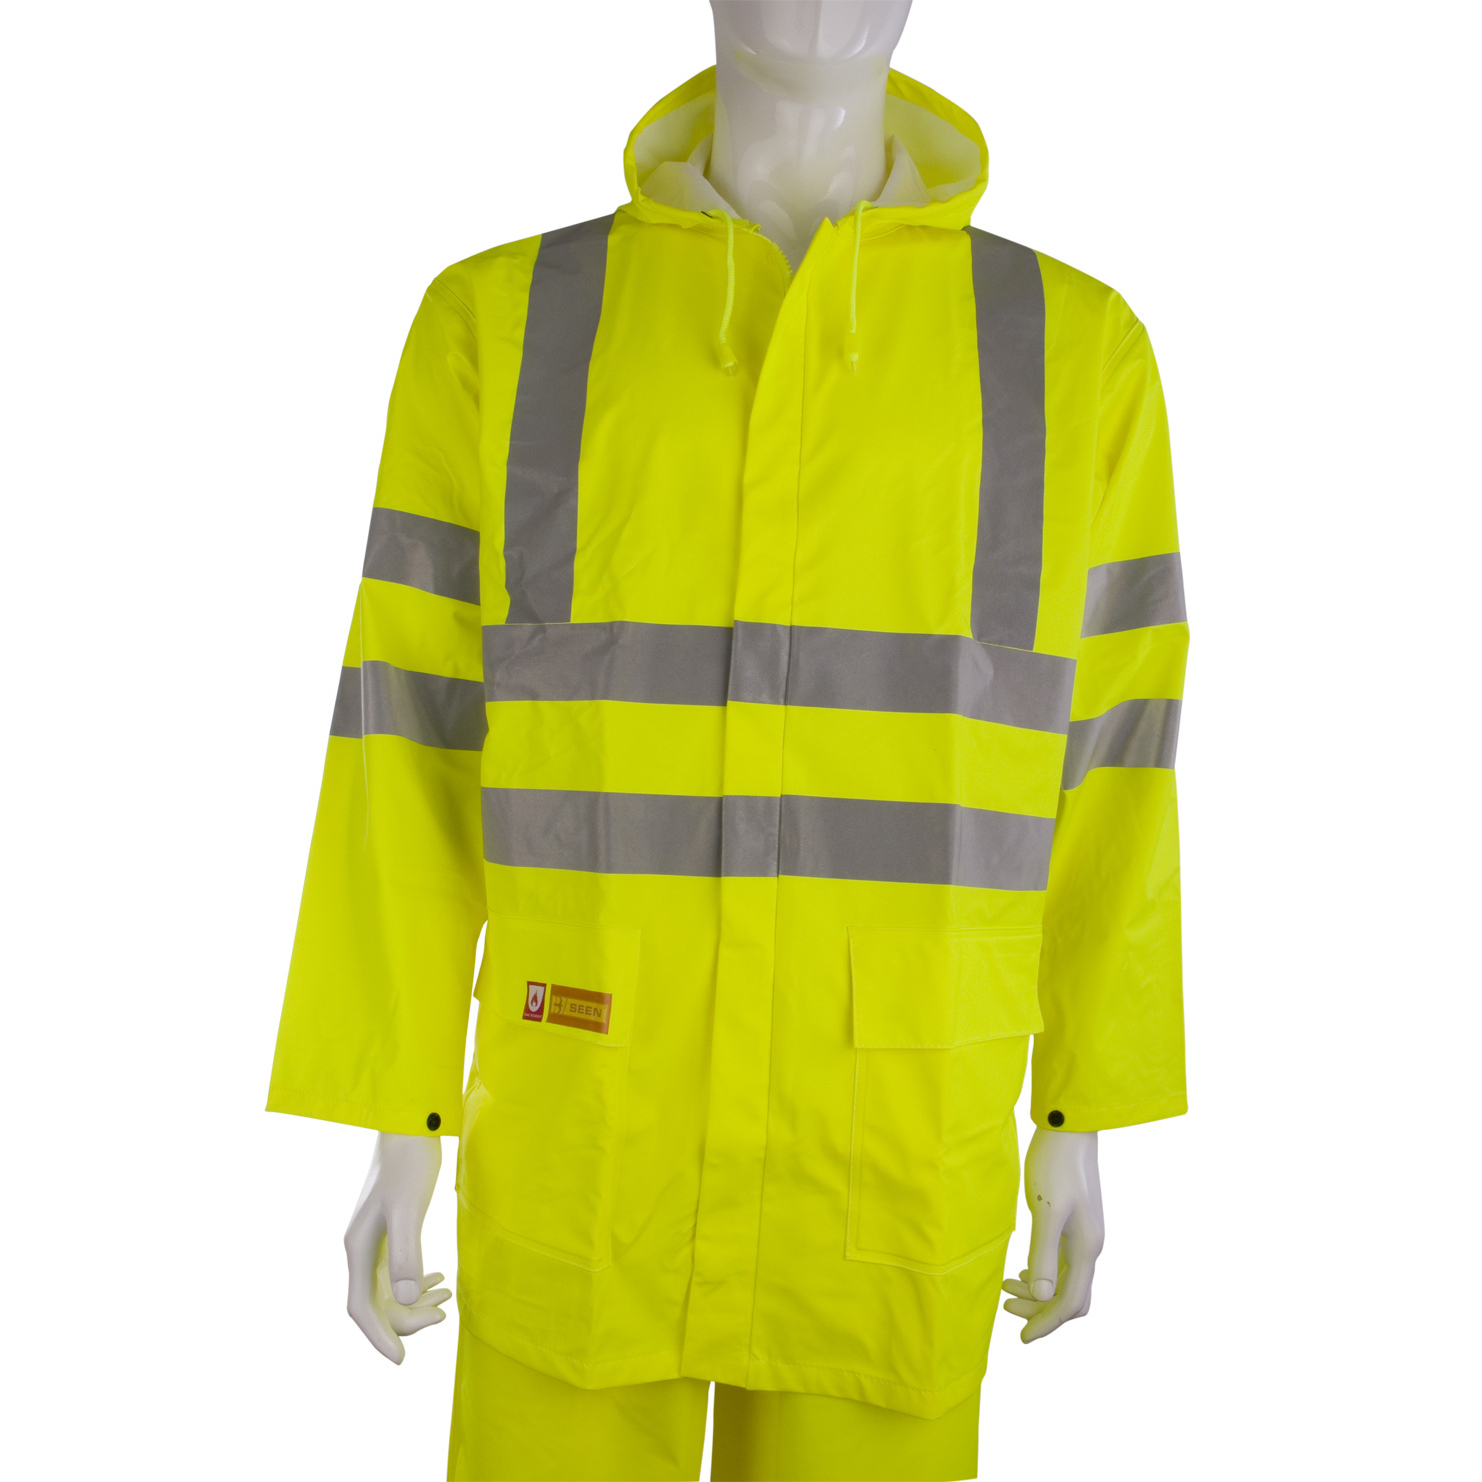 B-Seen Fire Retardant Jacket Anti-static Large Sat Yellow Ref CFRLR55SYL *Up to 3 Day Leadtime*